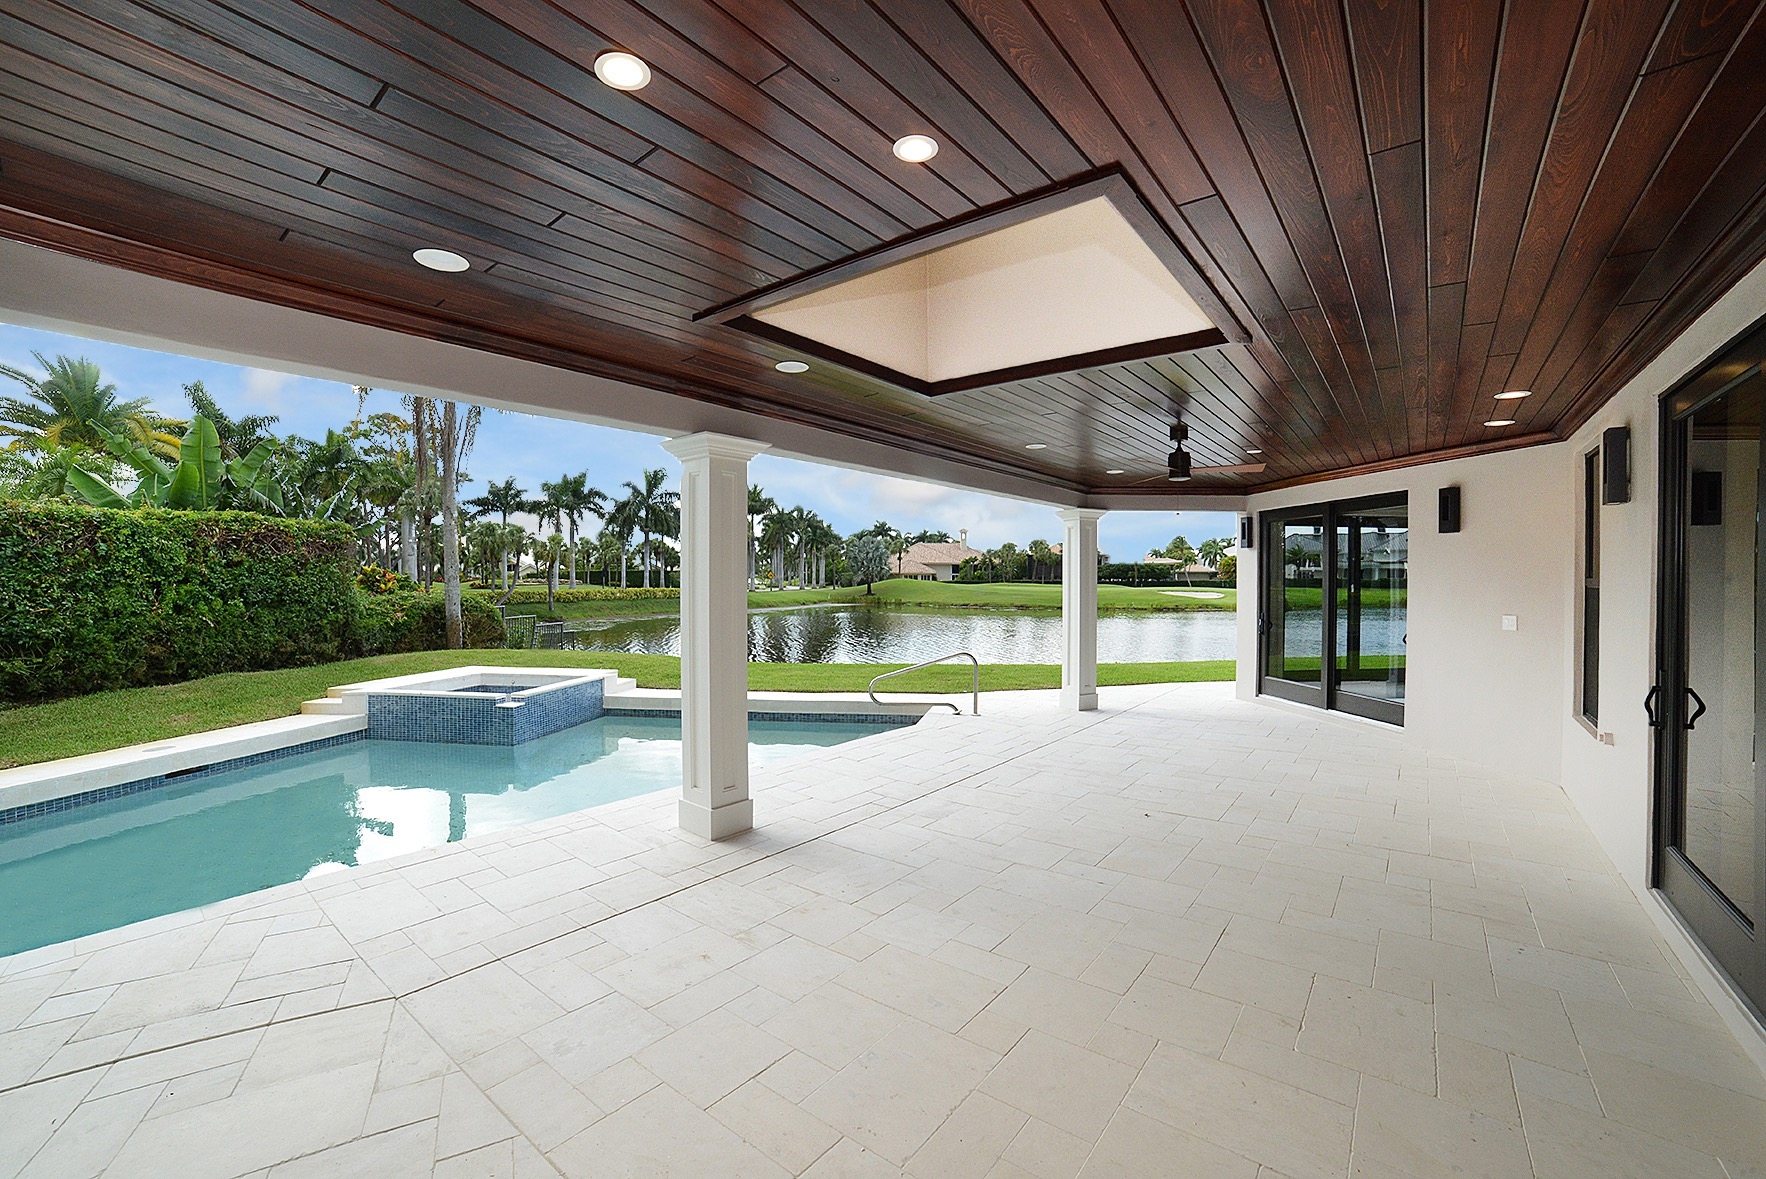 mag real estate & development construction general contractor builder renovation south florida boca raton new custom luxury home for sale interior design st. andrews country club 7026 ayrshire lane 24.jpg